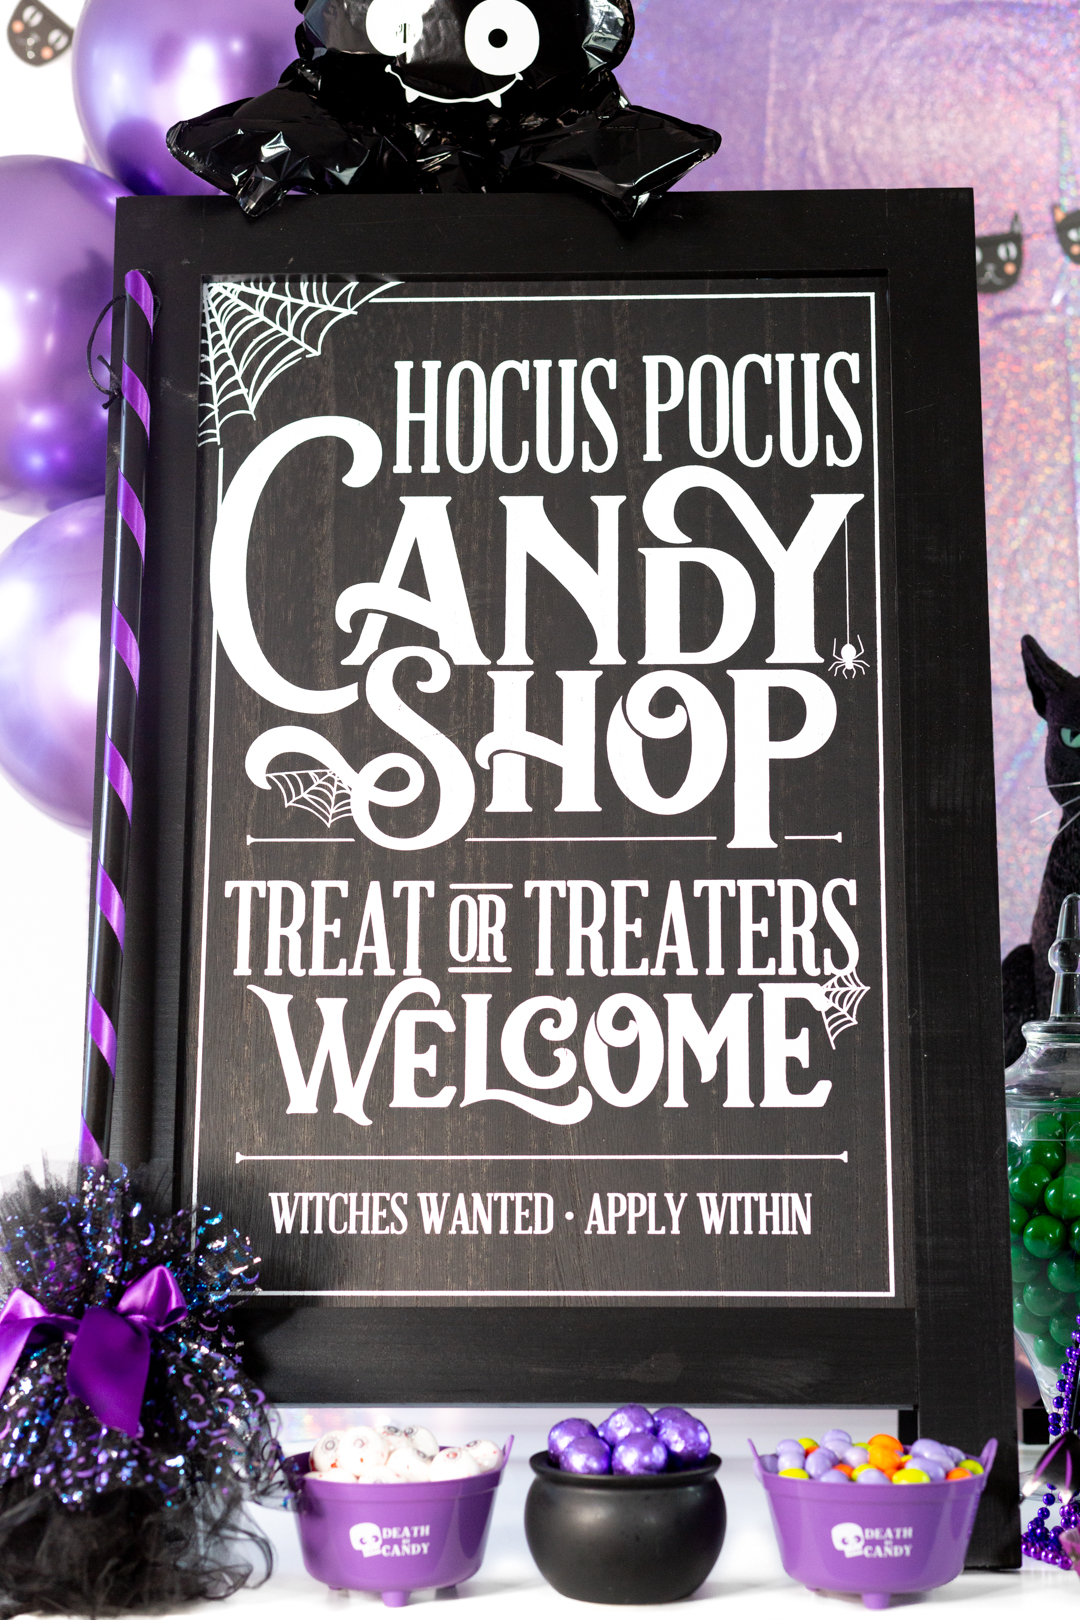 hocus pocus candy shop stand up sign